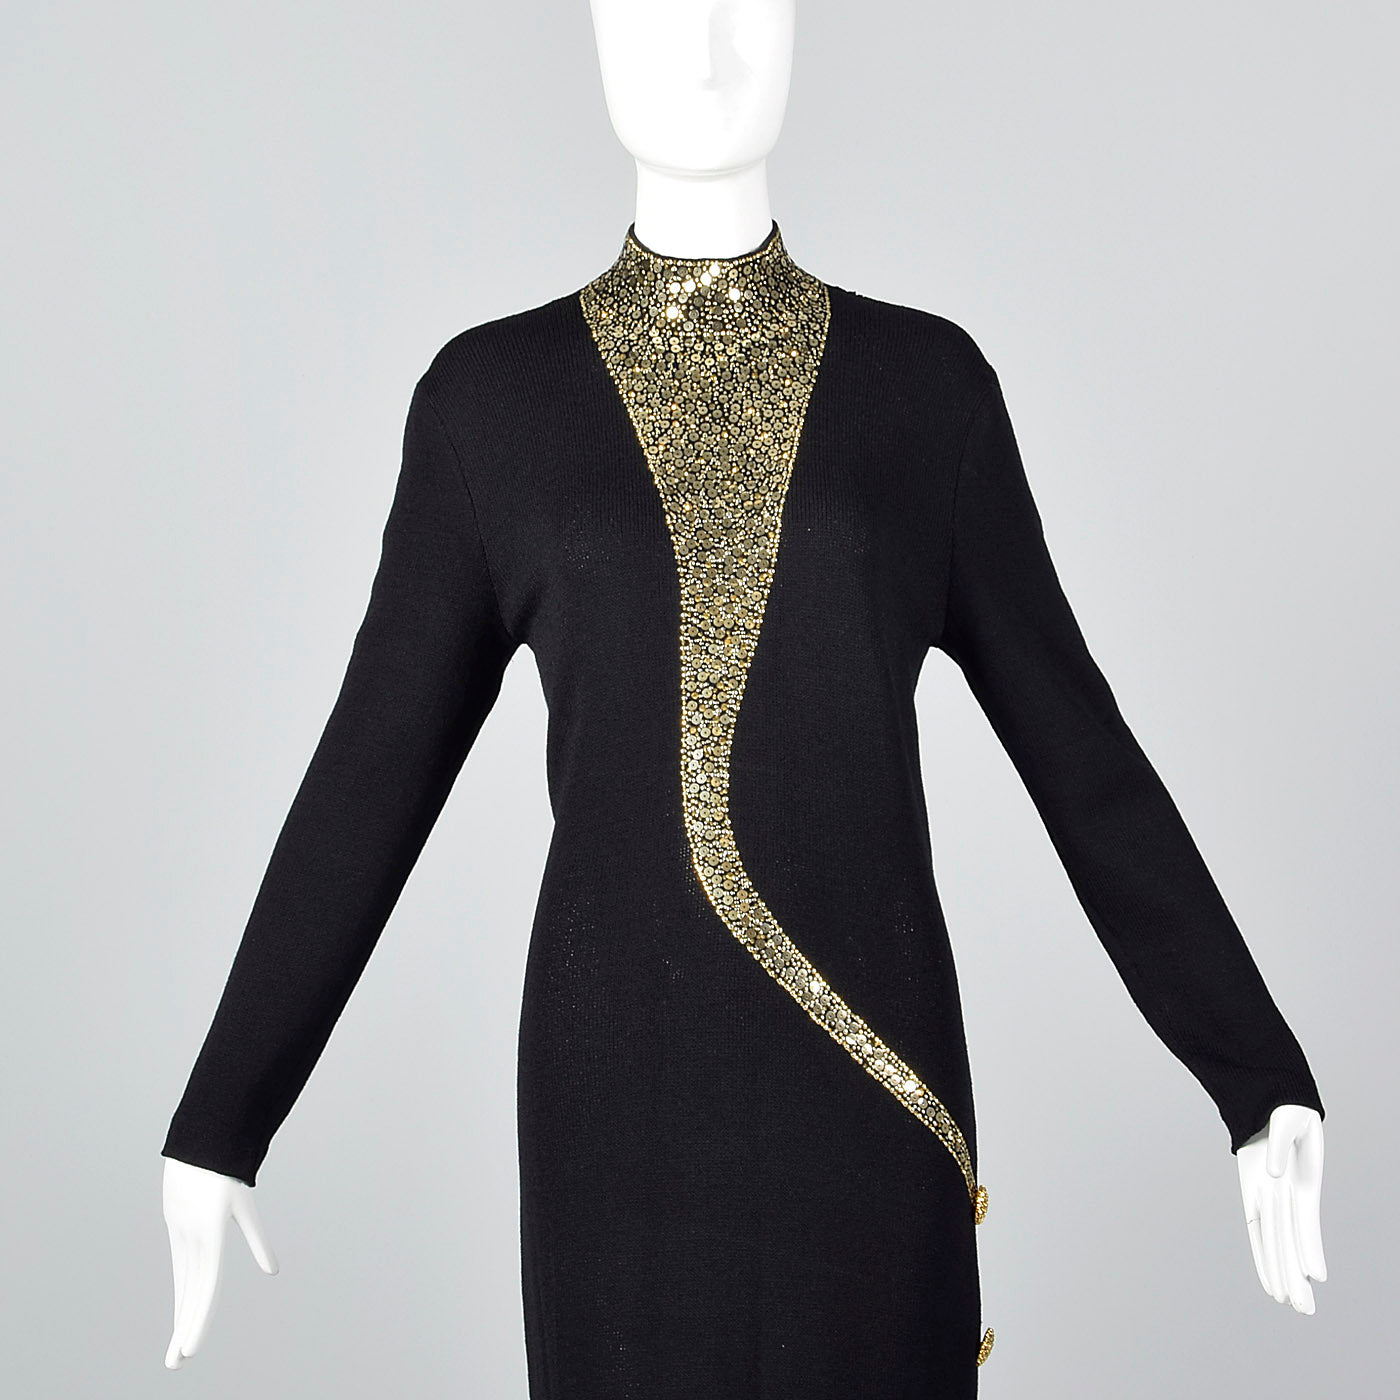 1980s St John Evening Long Black Knit Formal Dress with Gold Sequin Design